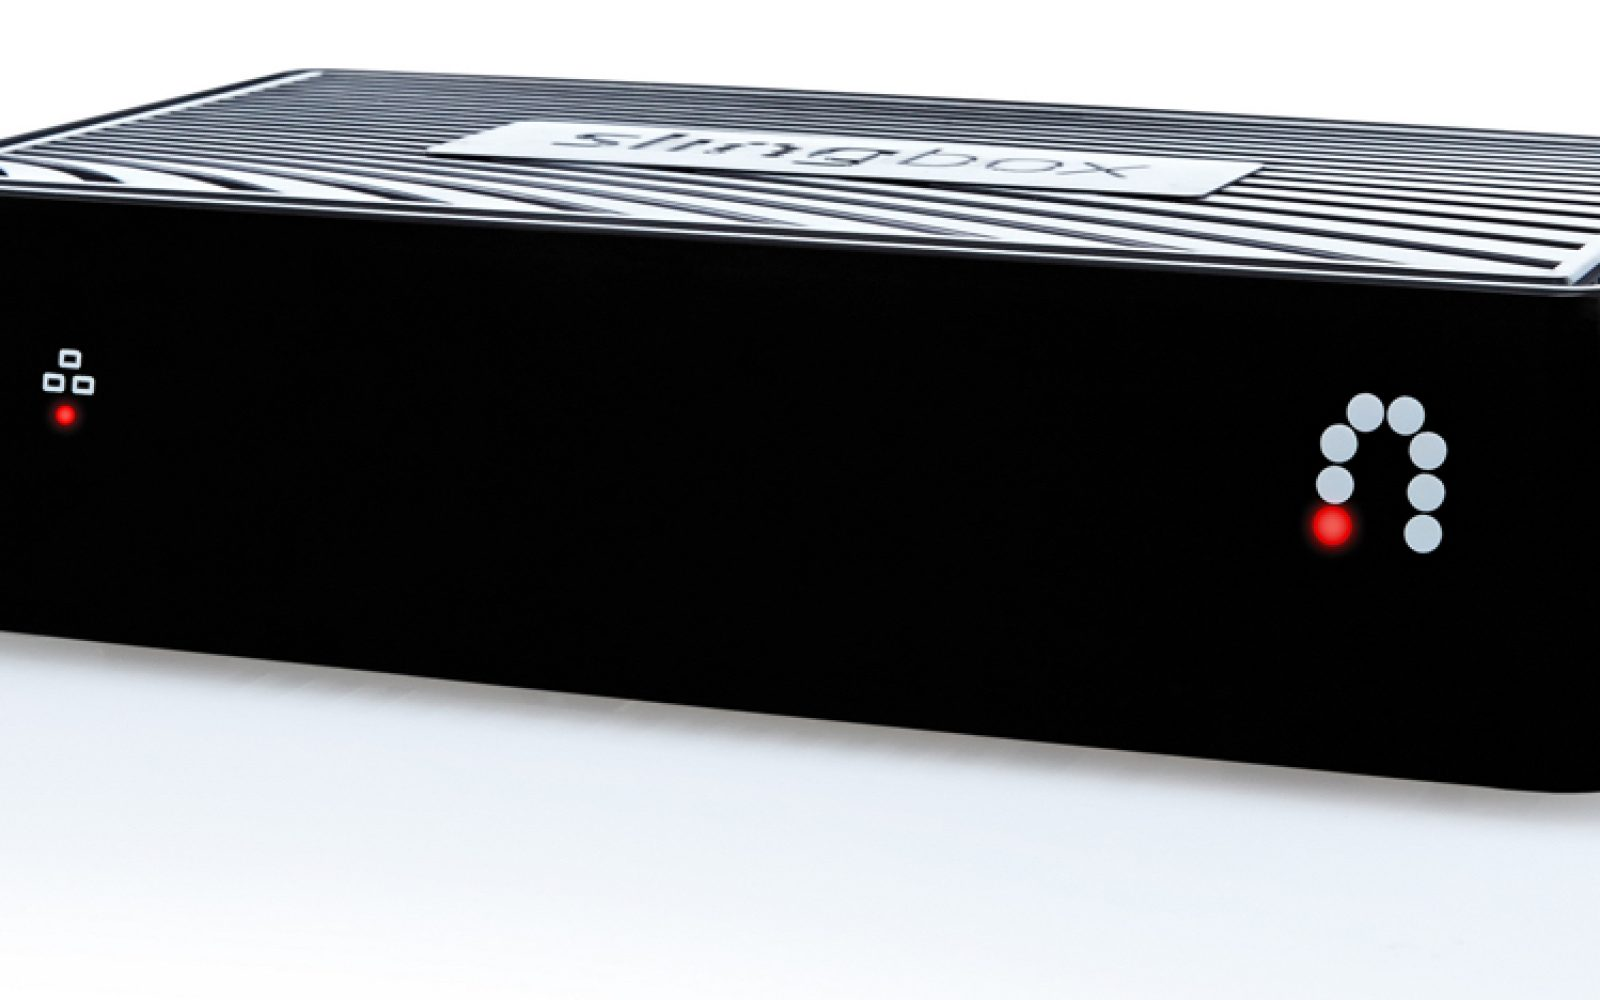 Sling Media introduces the new Slingbox M2 bundled w/ free downloads